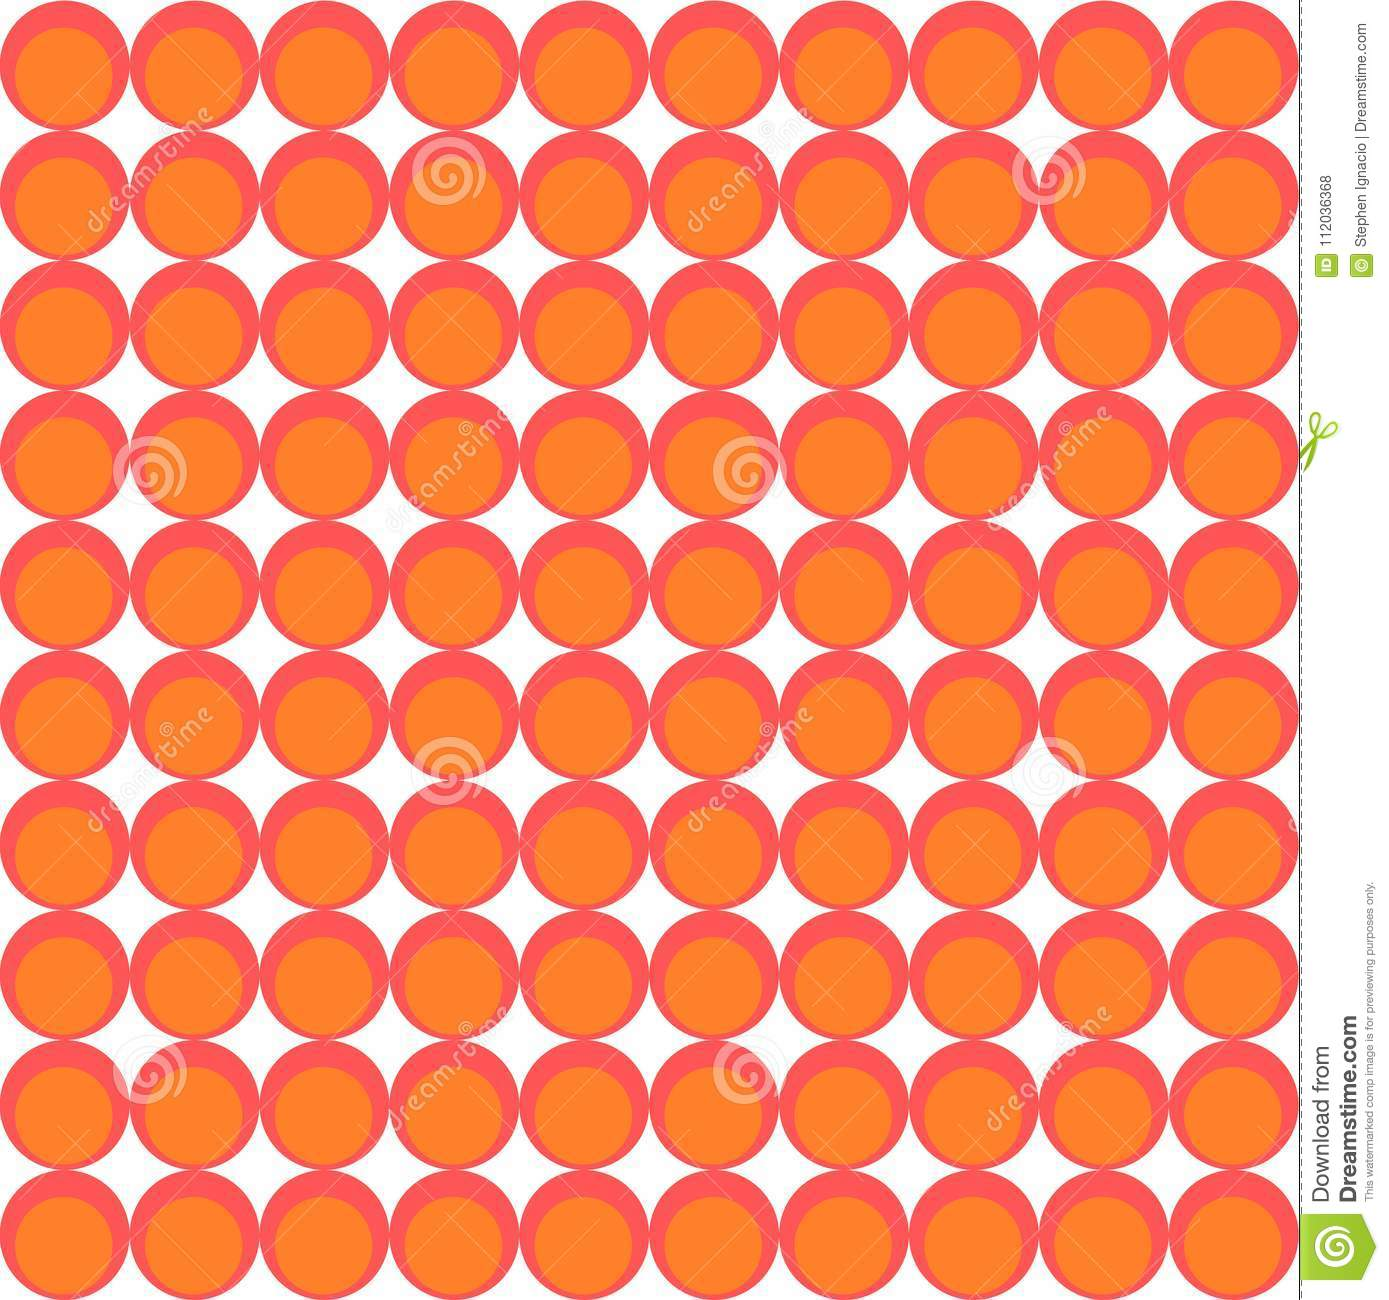 Wallpaper Pattern Made From Circles Stock Illustration